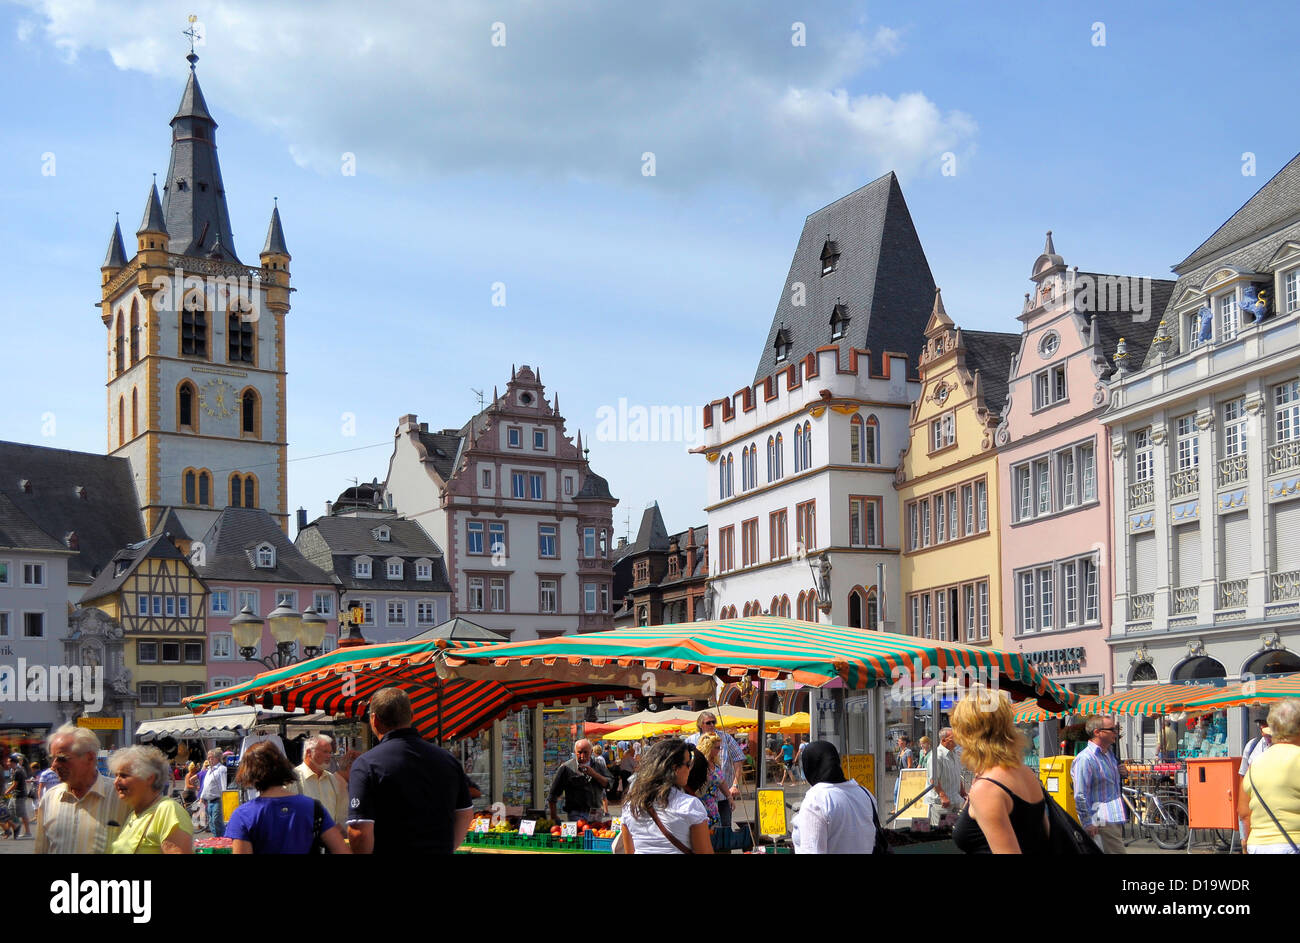 Trier Pedestrian Shopping Street The Main Market In The Center Stock Photo Alamy